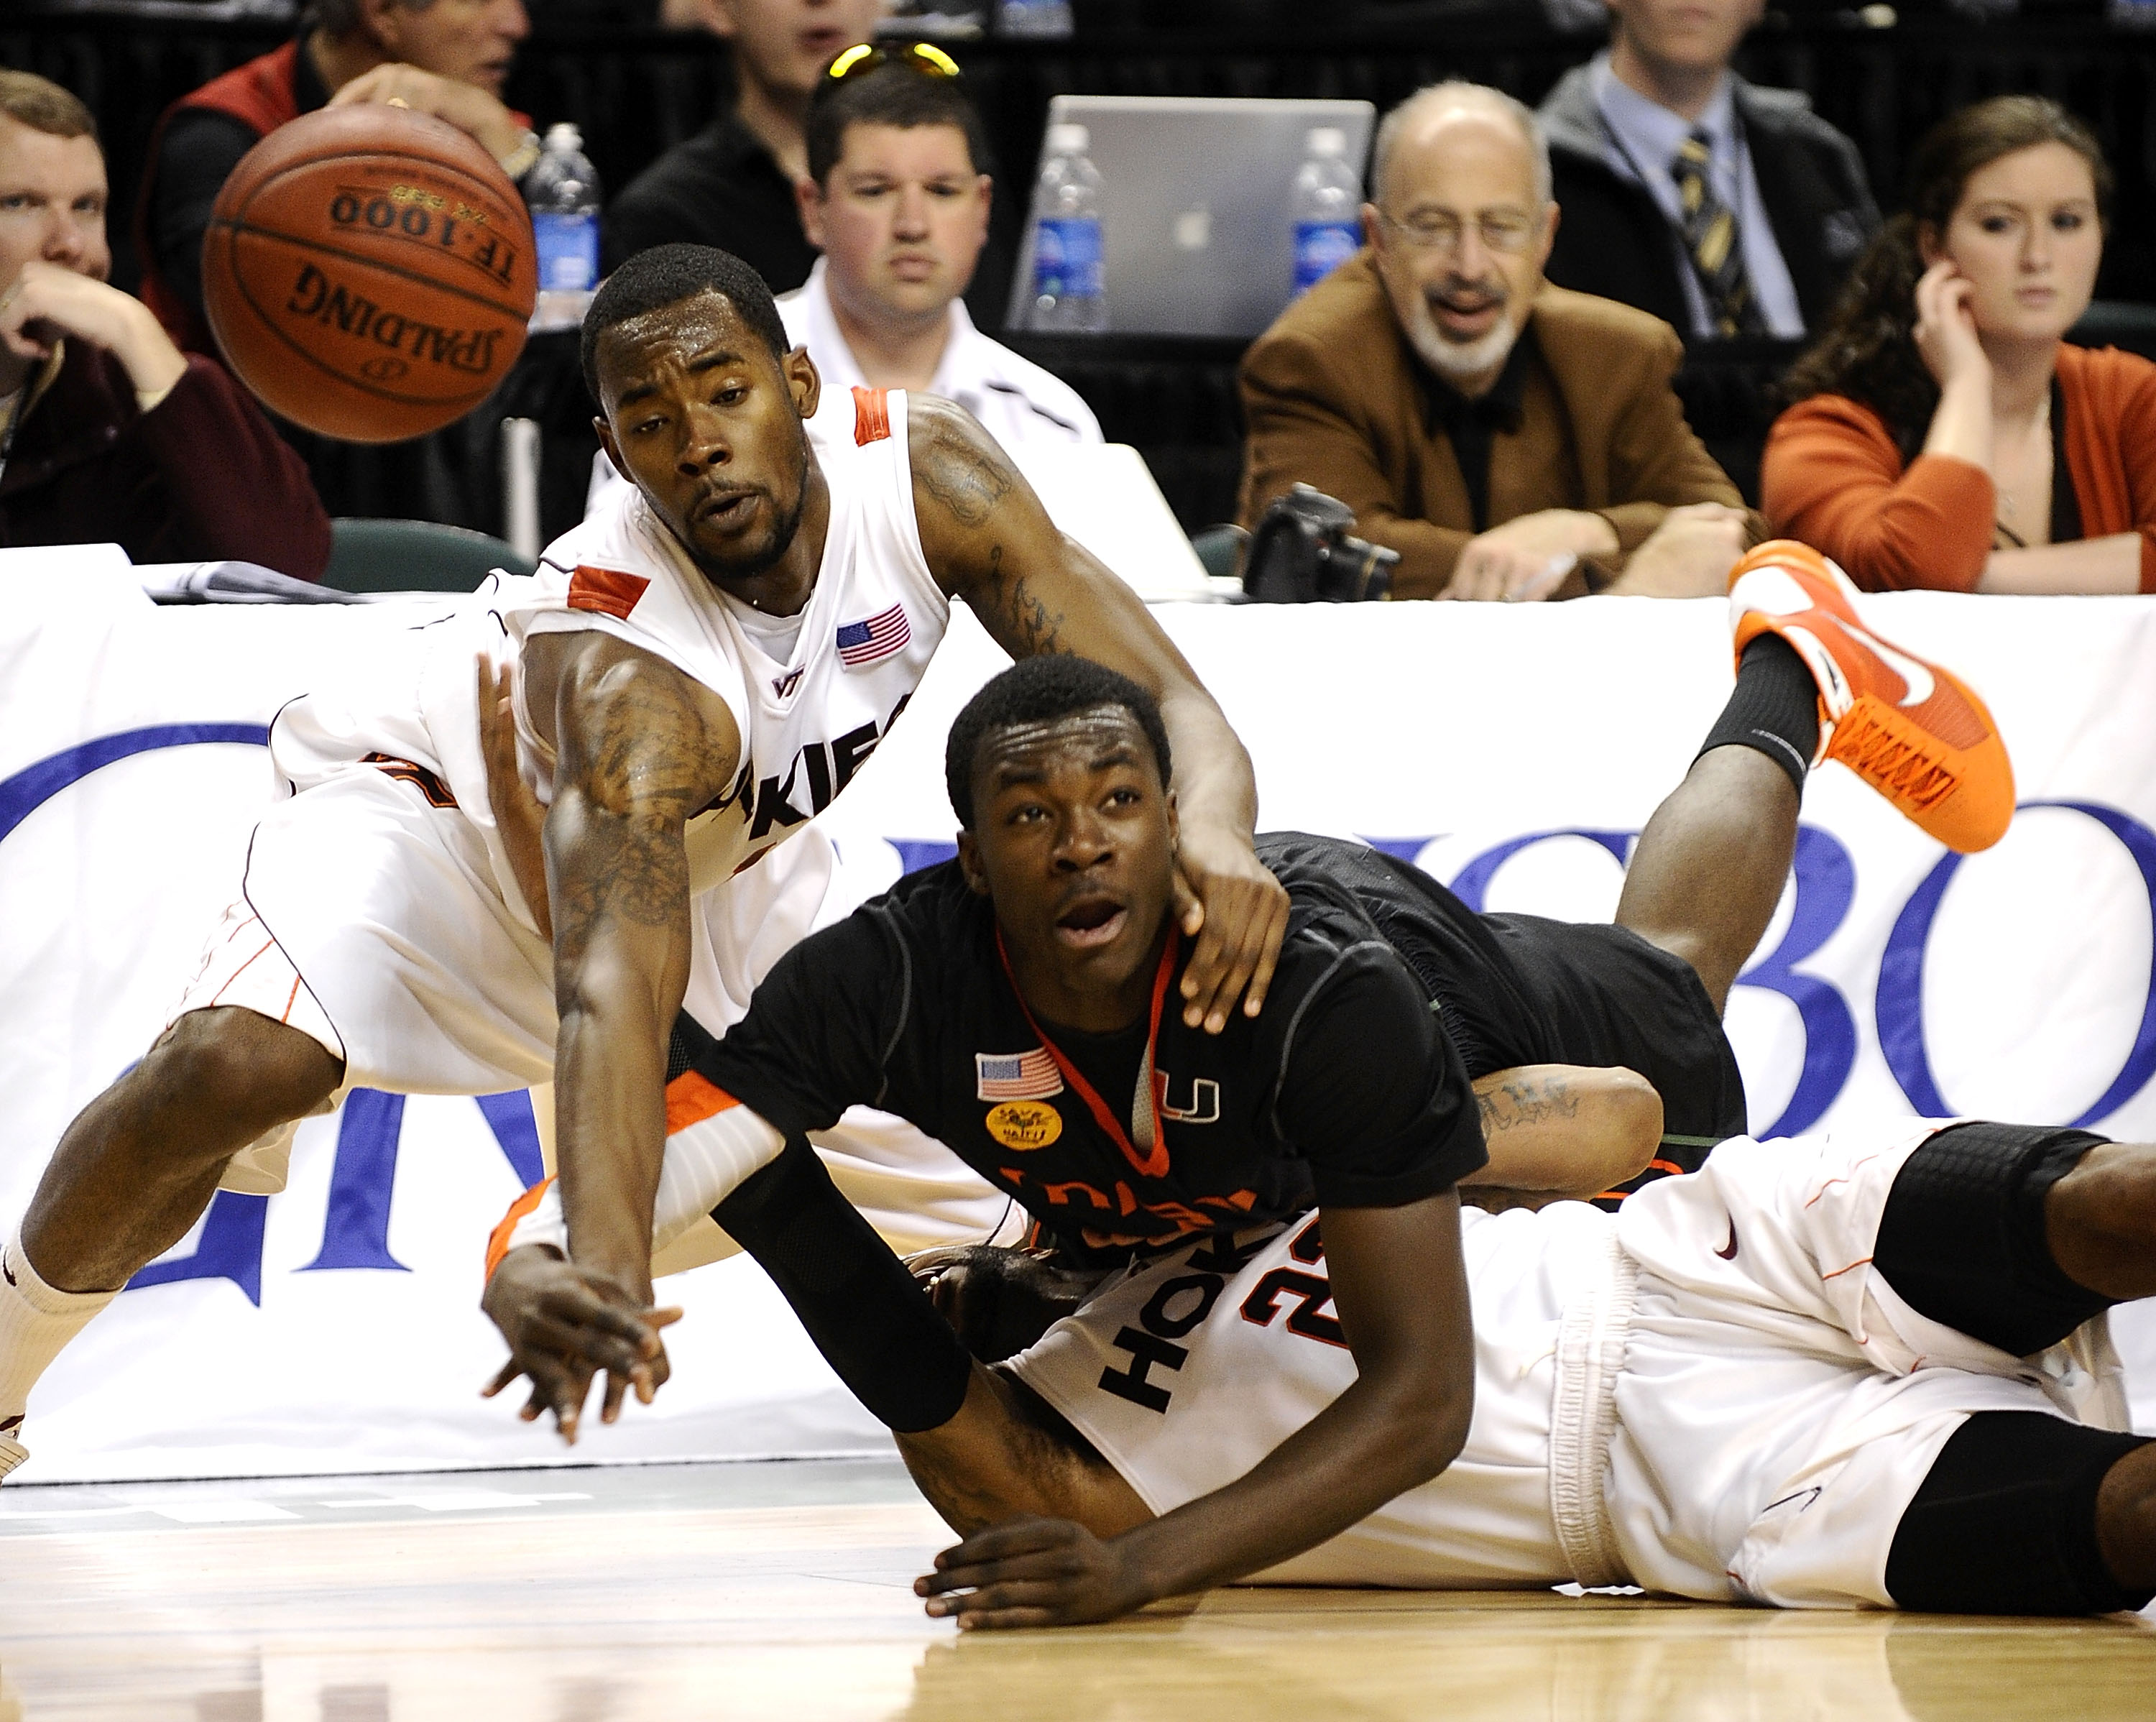 GREENSBORO, NC - MARCH 12:  Malcolm Delaney #23 and Terrell Bell #1 of the Virginia Tech Hokies fights for a loose ball with Durand Scott #1  of the University of Miami Hurricanes in their quarterfinal game in the 2010 ACC Men's Basketball Tournament at t